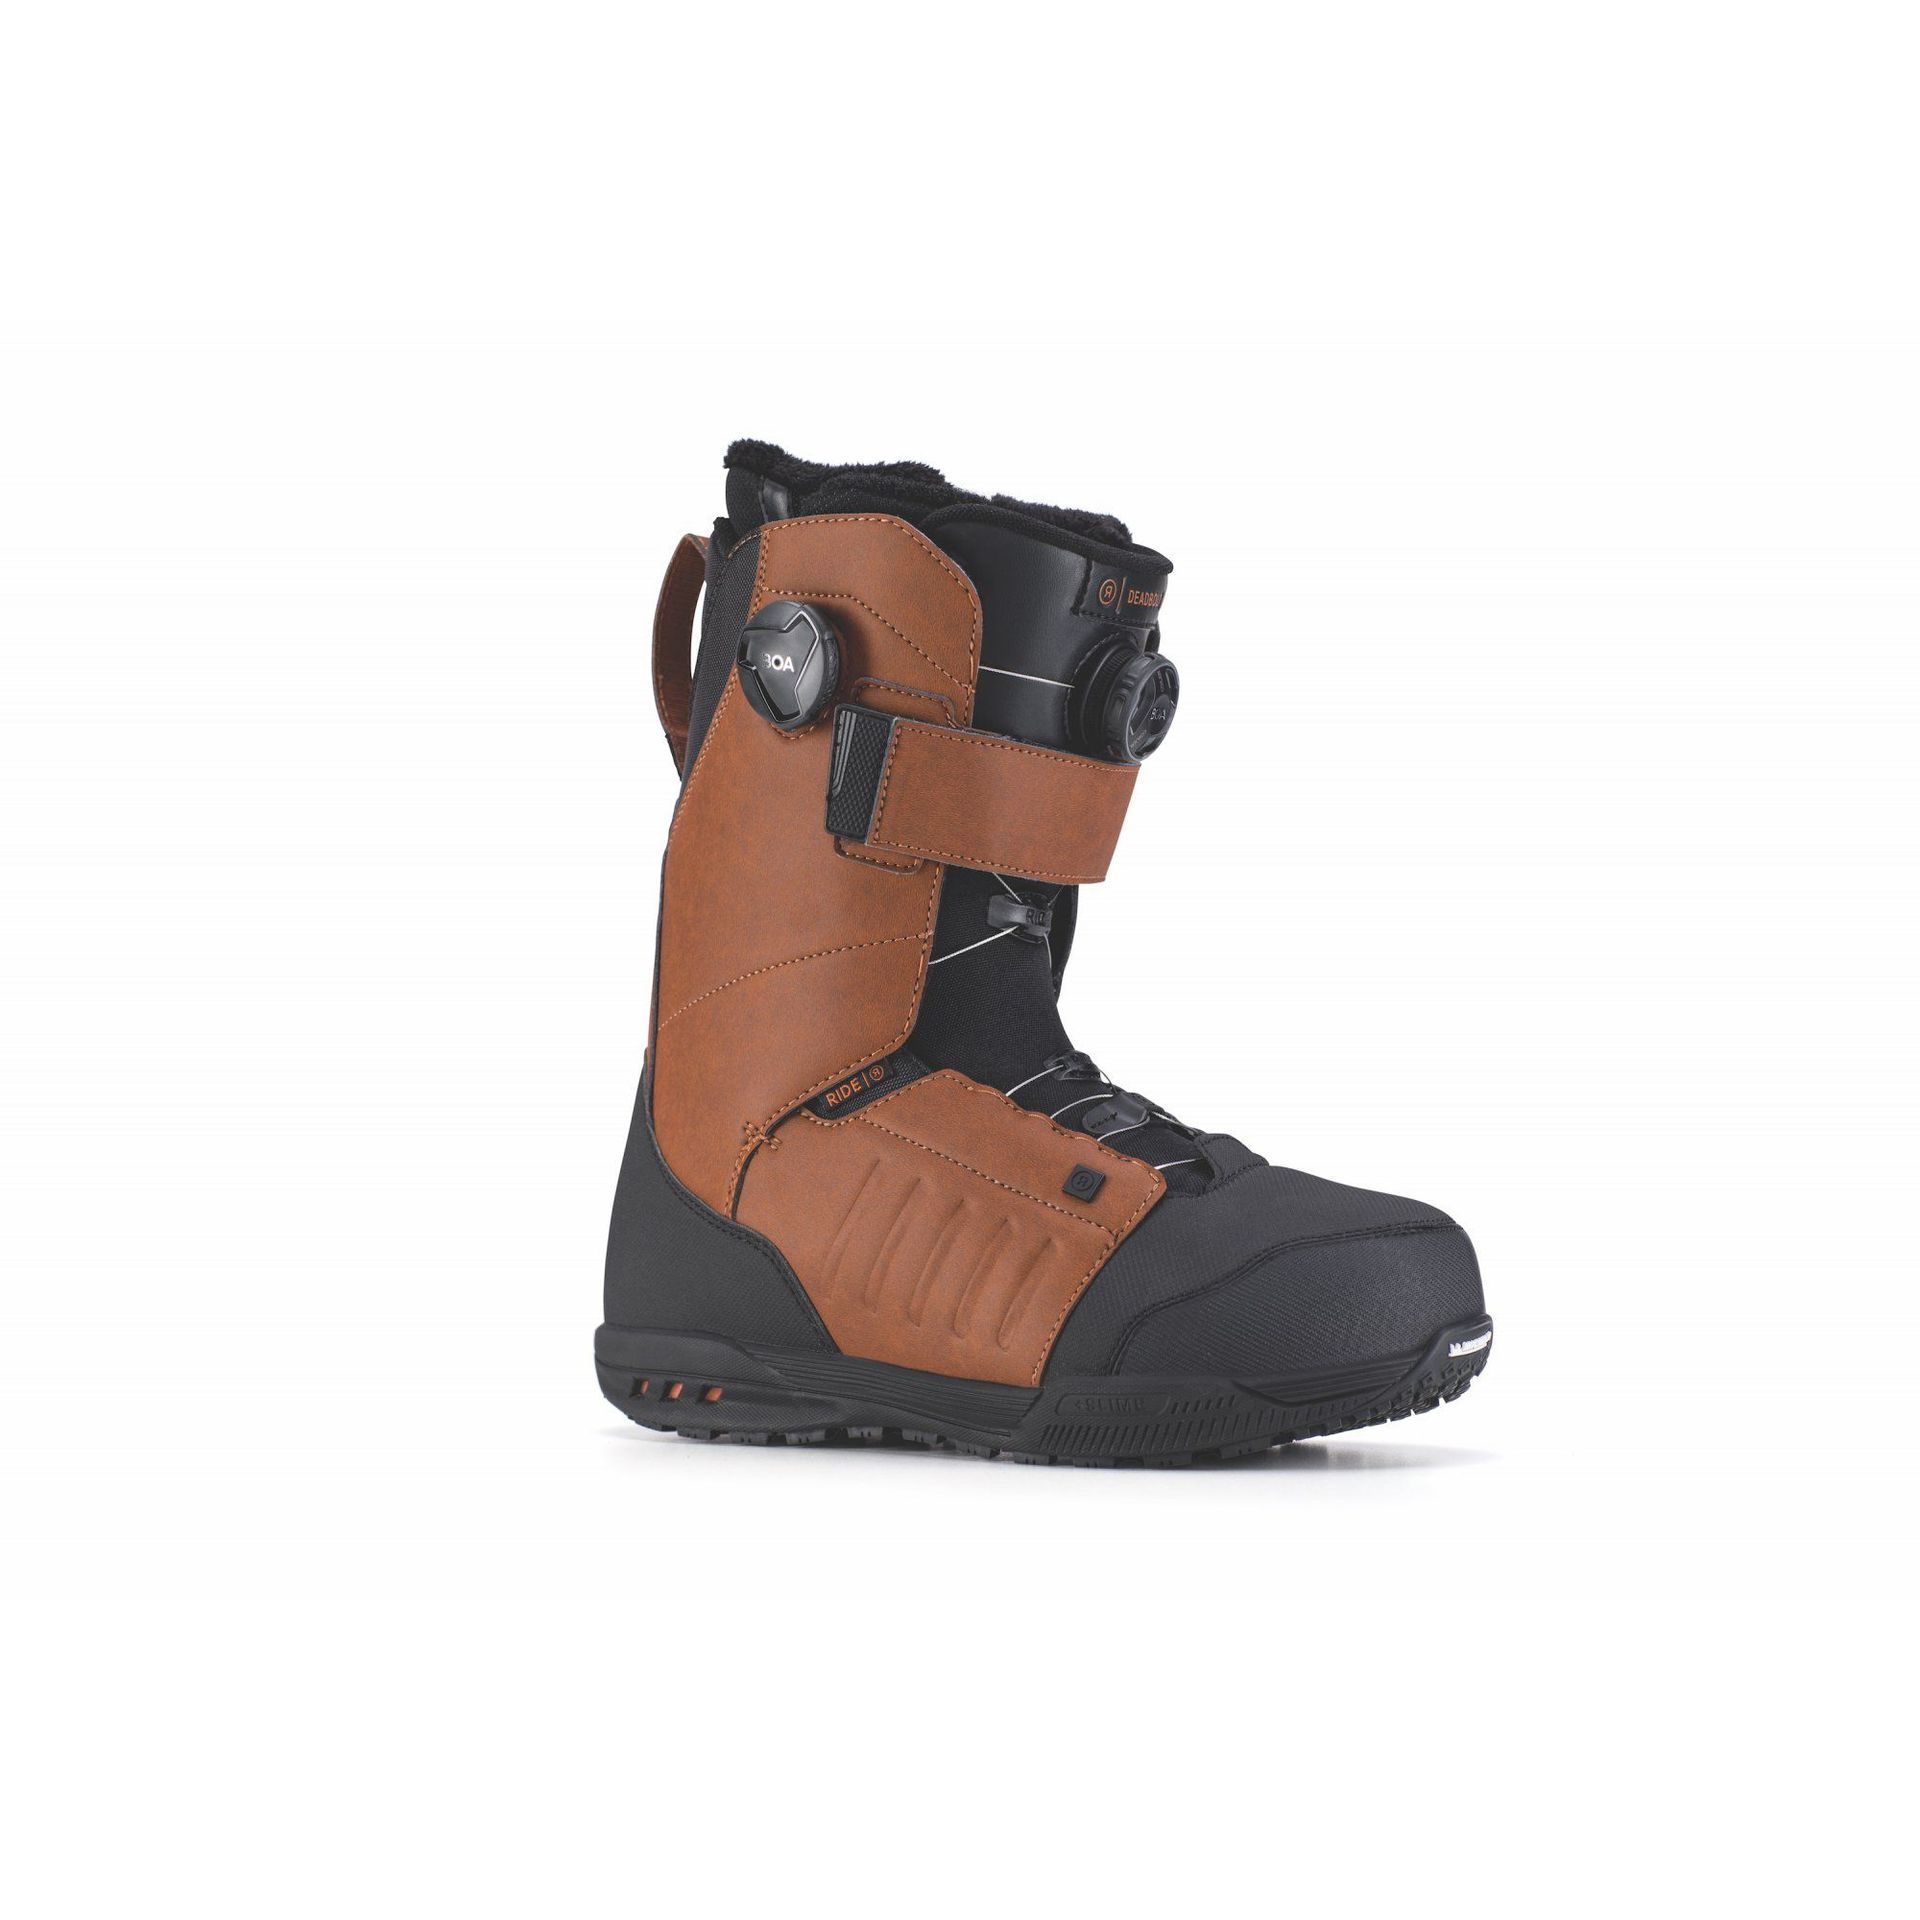 BUTY SNOWBOARDOWE RIDE DEADBOLT BROWN